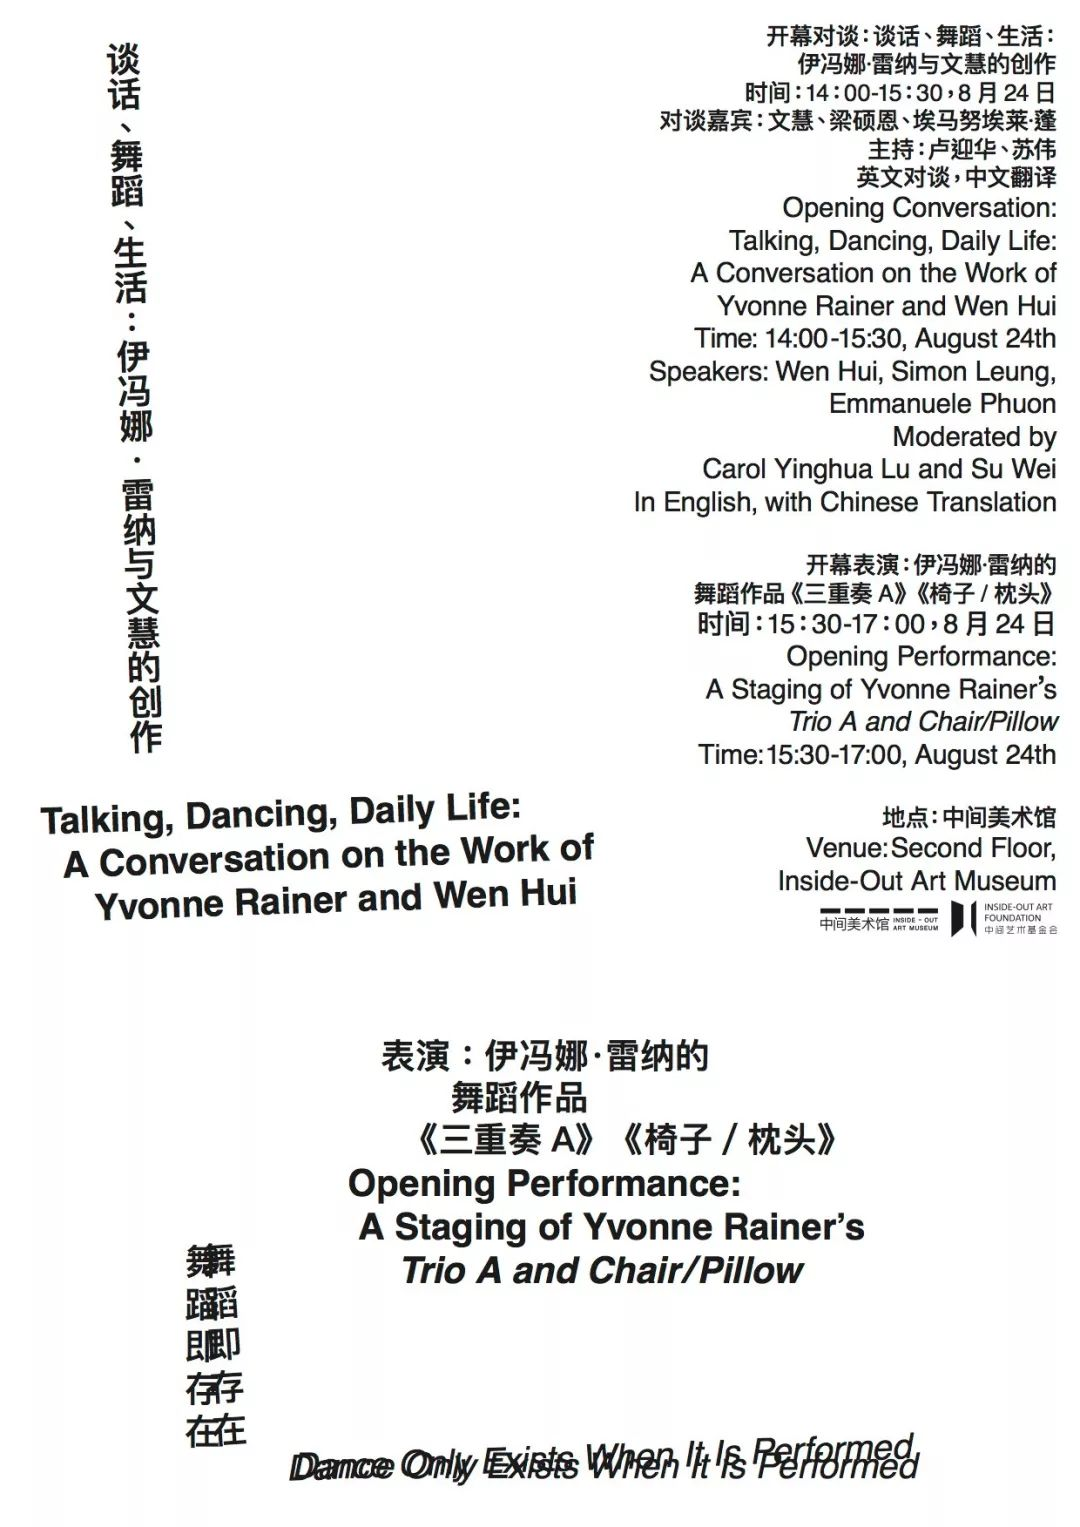 Yvonne Rainer and Wen Hui: Dance Only Exists When It Is Performed  will open tomorrow! Welcome to our opening events!